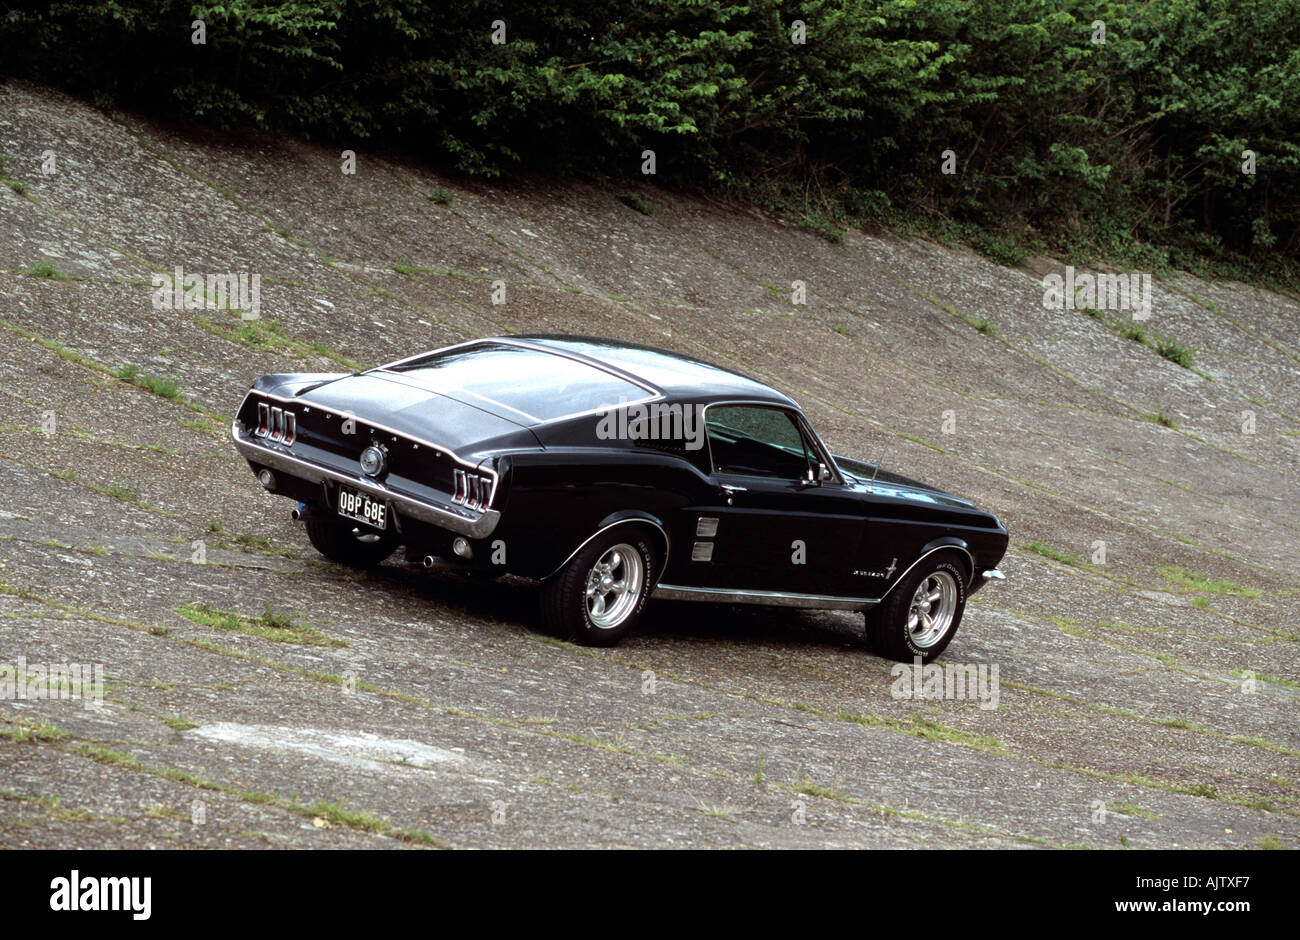 Ford Mustang Fastback >> Ford Mustang Fastback Of 1967 Stock Photo 4836086 Alamy